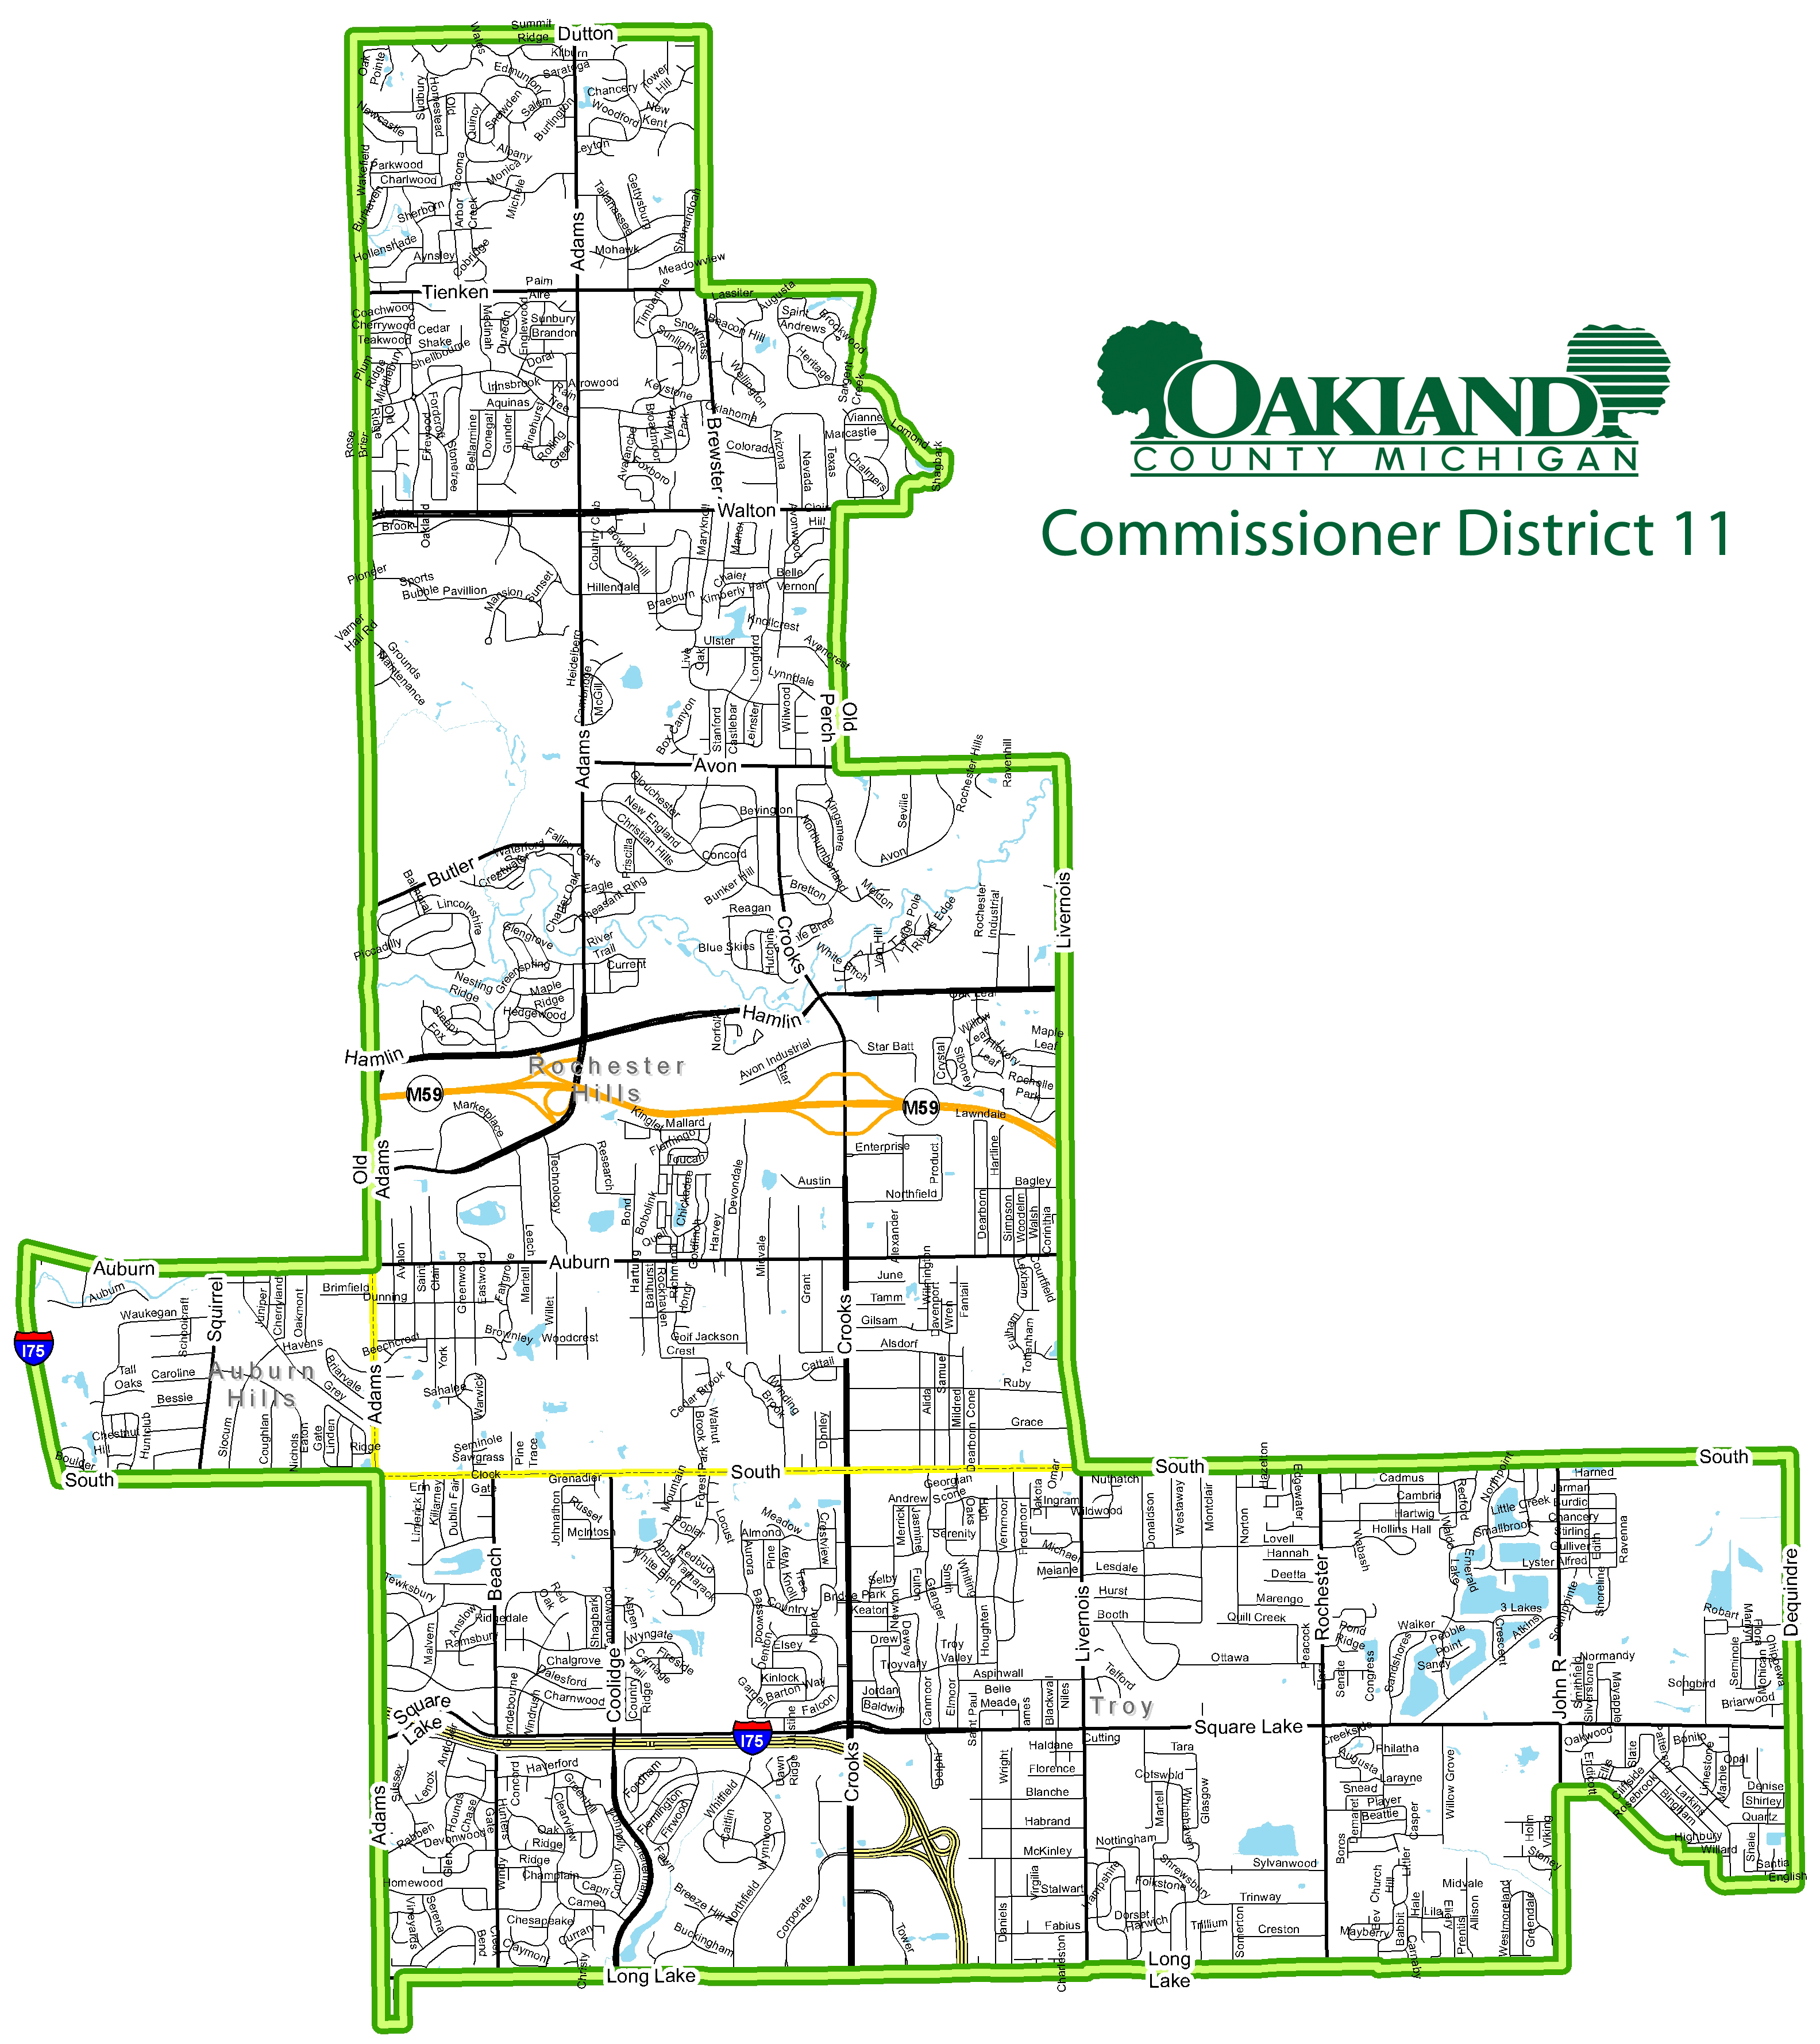 Street map of Commissioner District 11